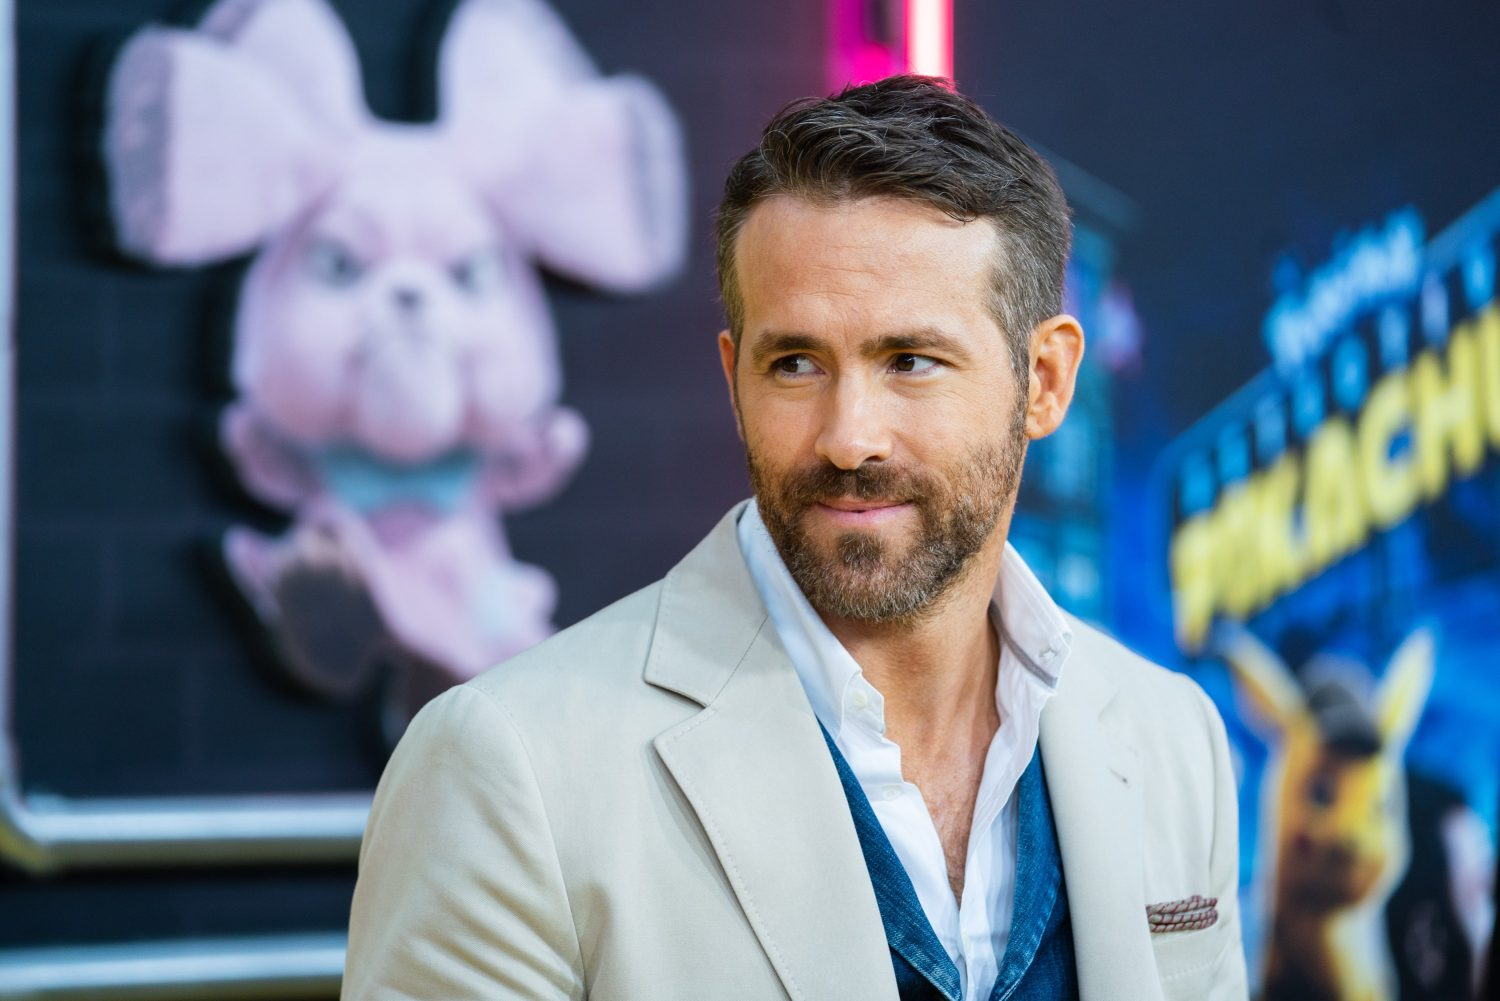 ryan reynolds to return for deadpool 3 and it'll be r-rated